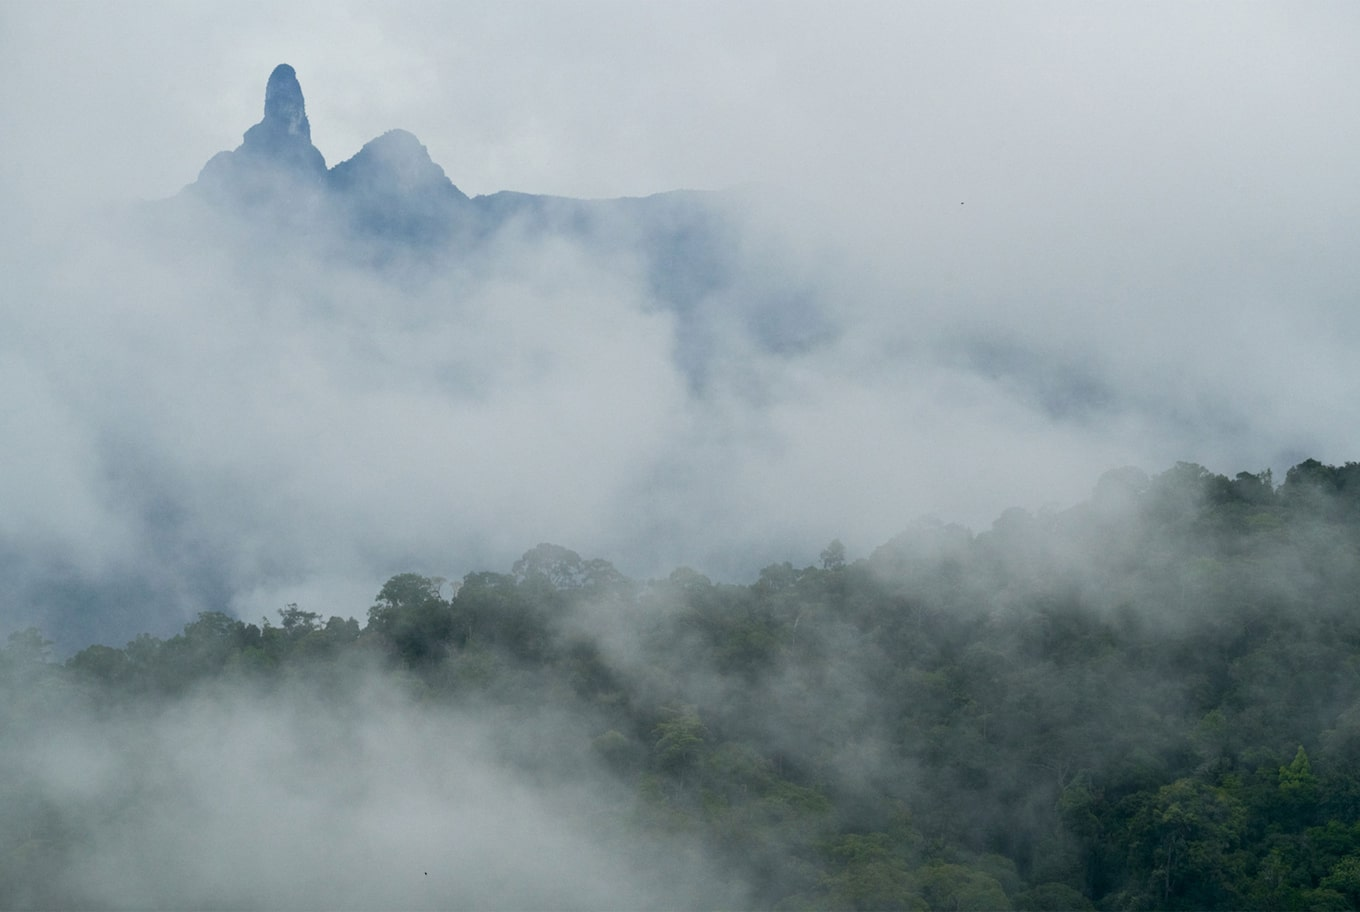 Tomas Wuethrich sony alpha 7RM3 mist envelopes tree topped mountains